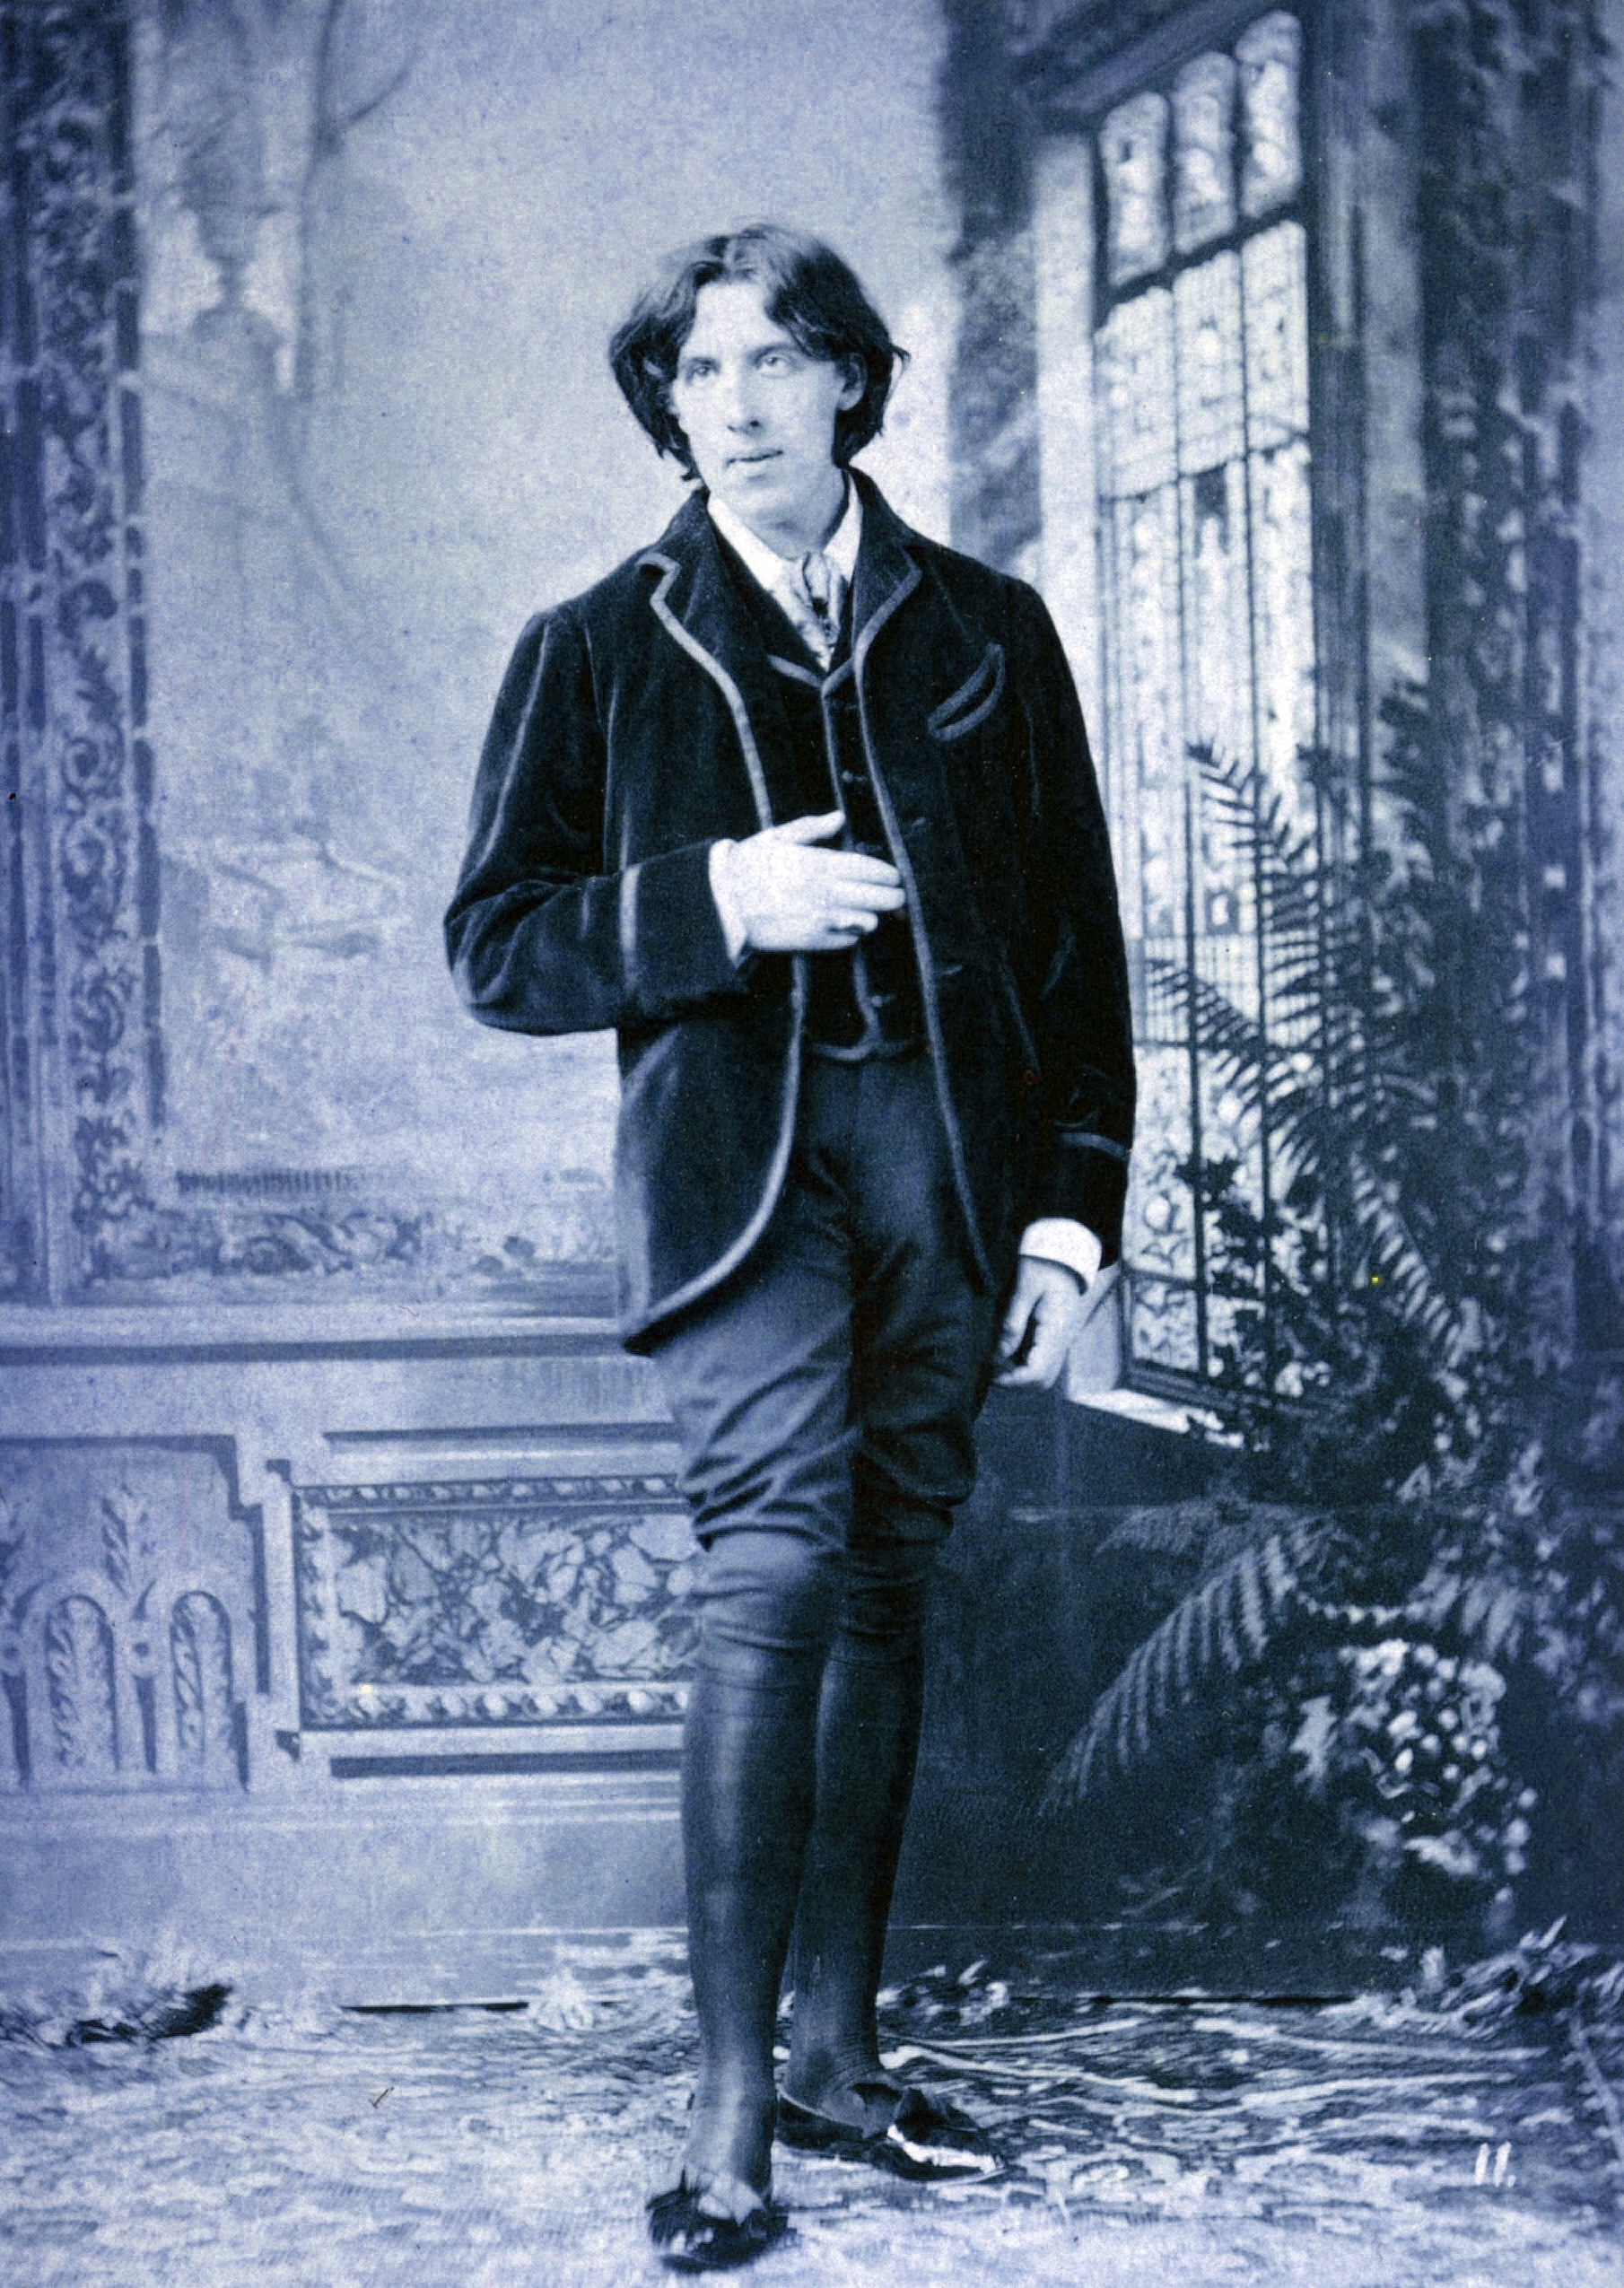 Gay icon and martyr figure Oscar Wilde converted to the Catholic faith on  his deathbed. You can read the fascinating story here.